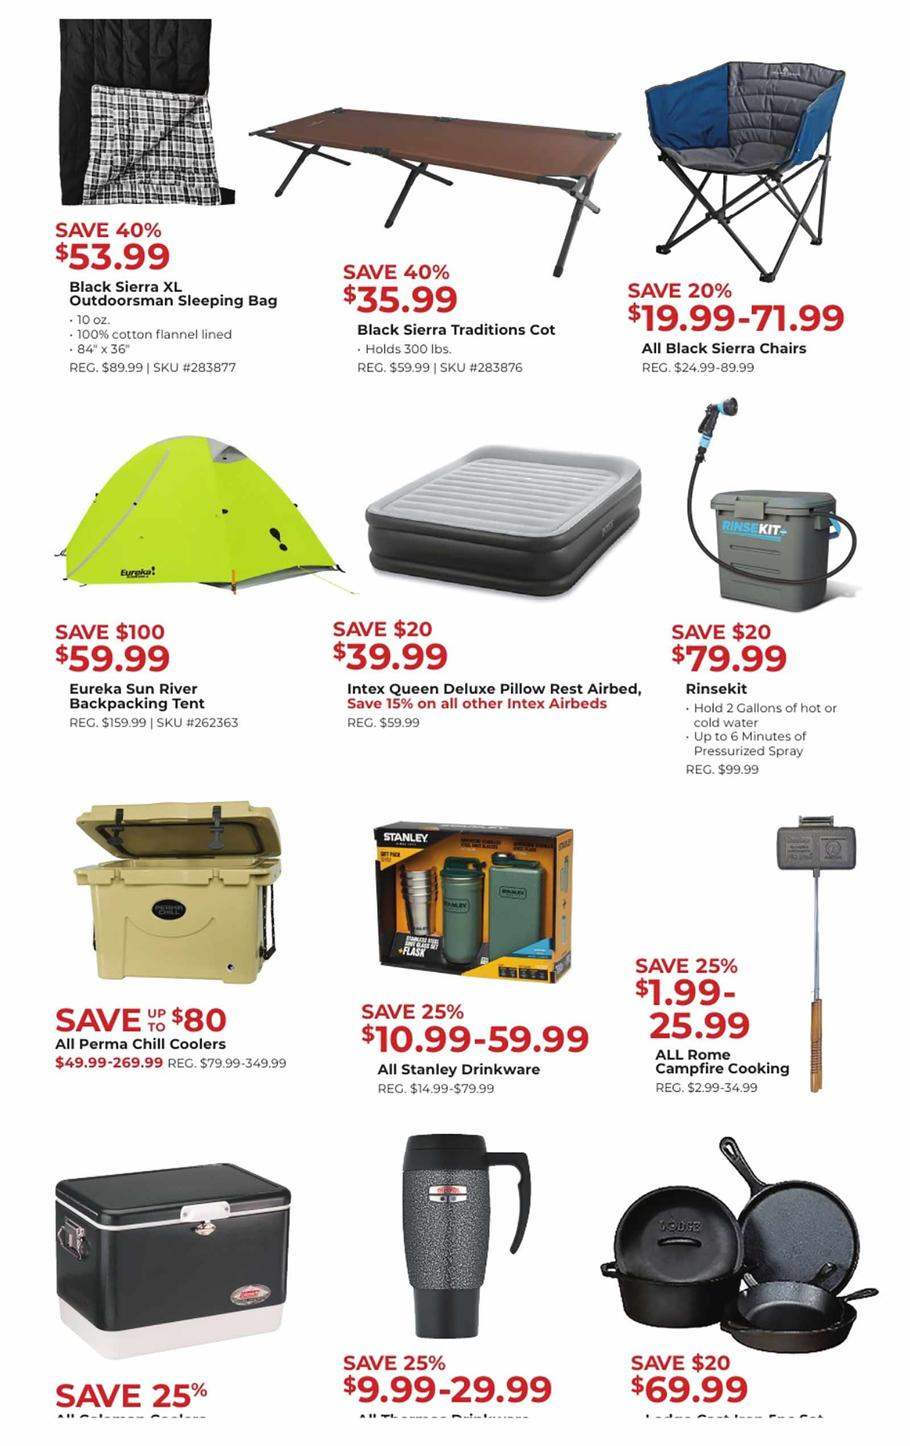 Gander Outdoors Black Friday 2018 Ad